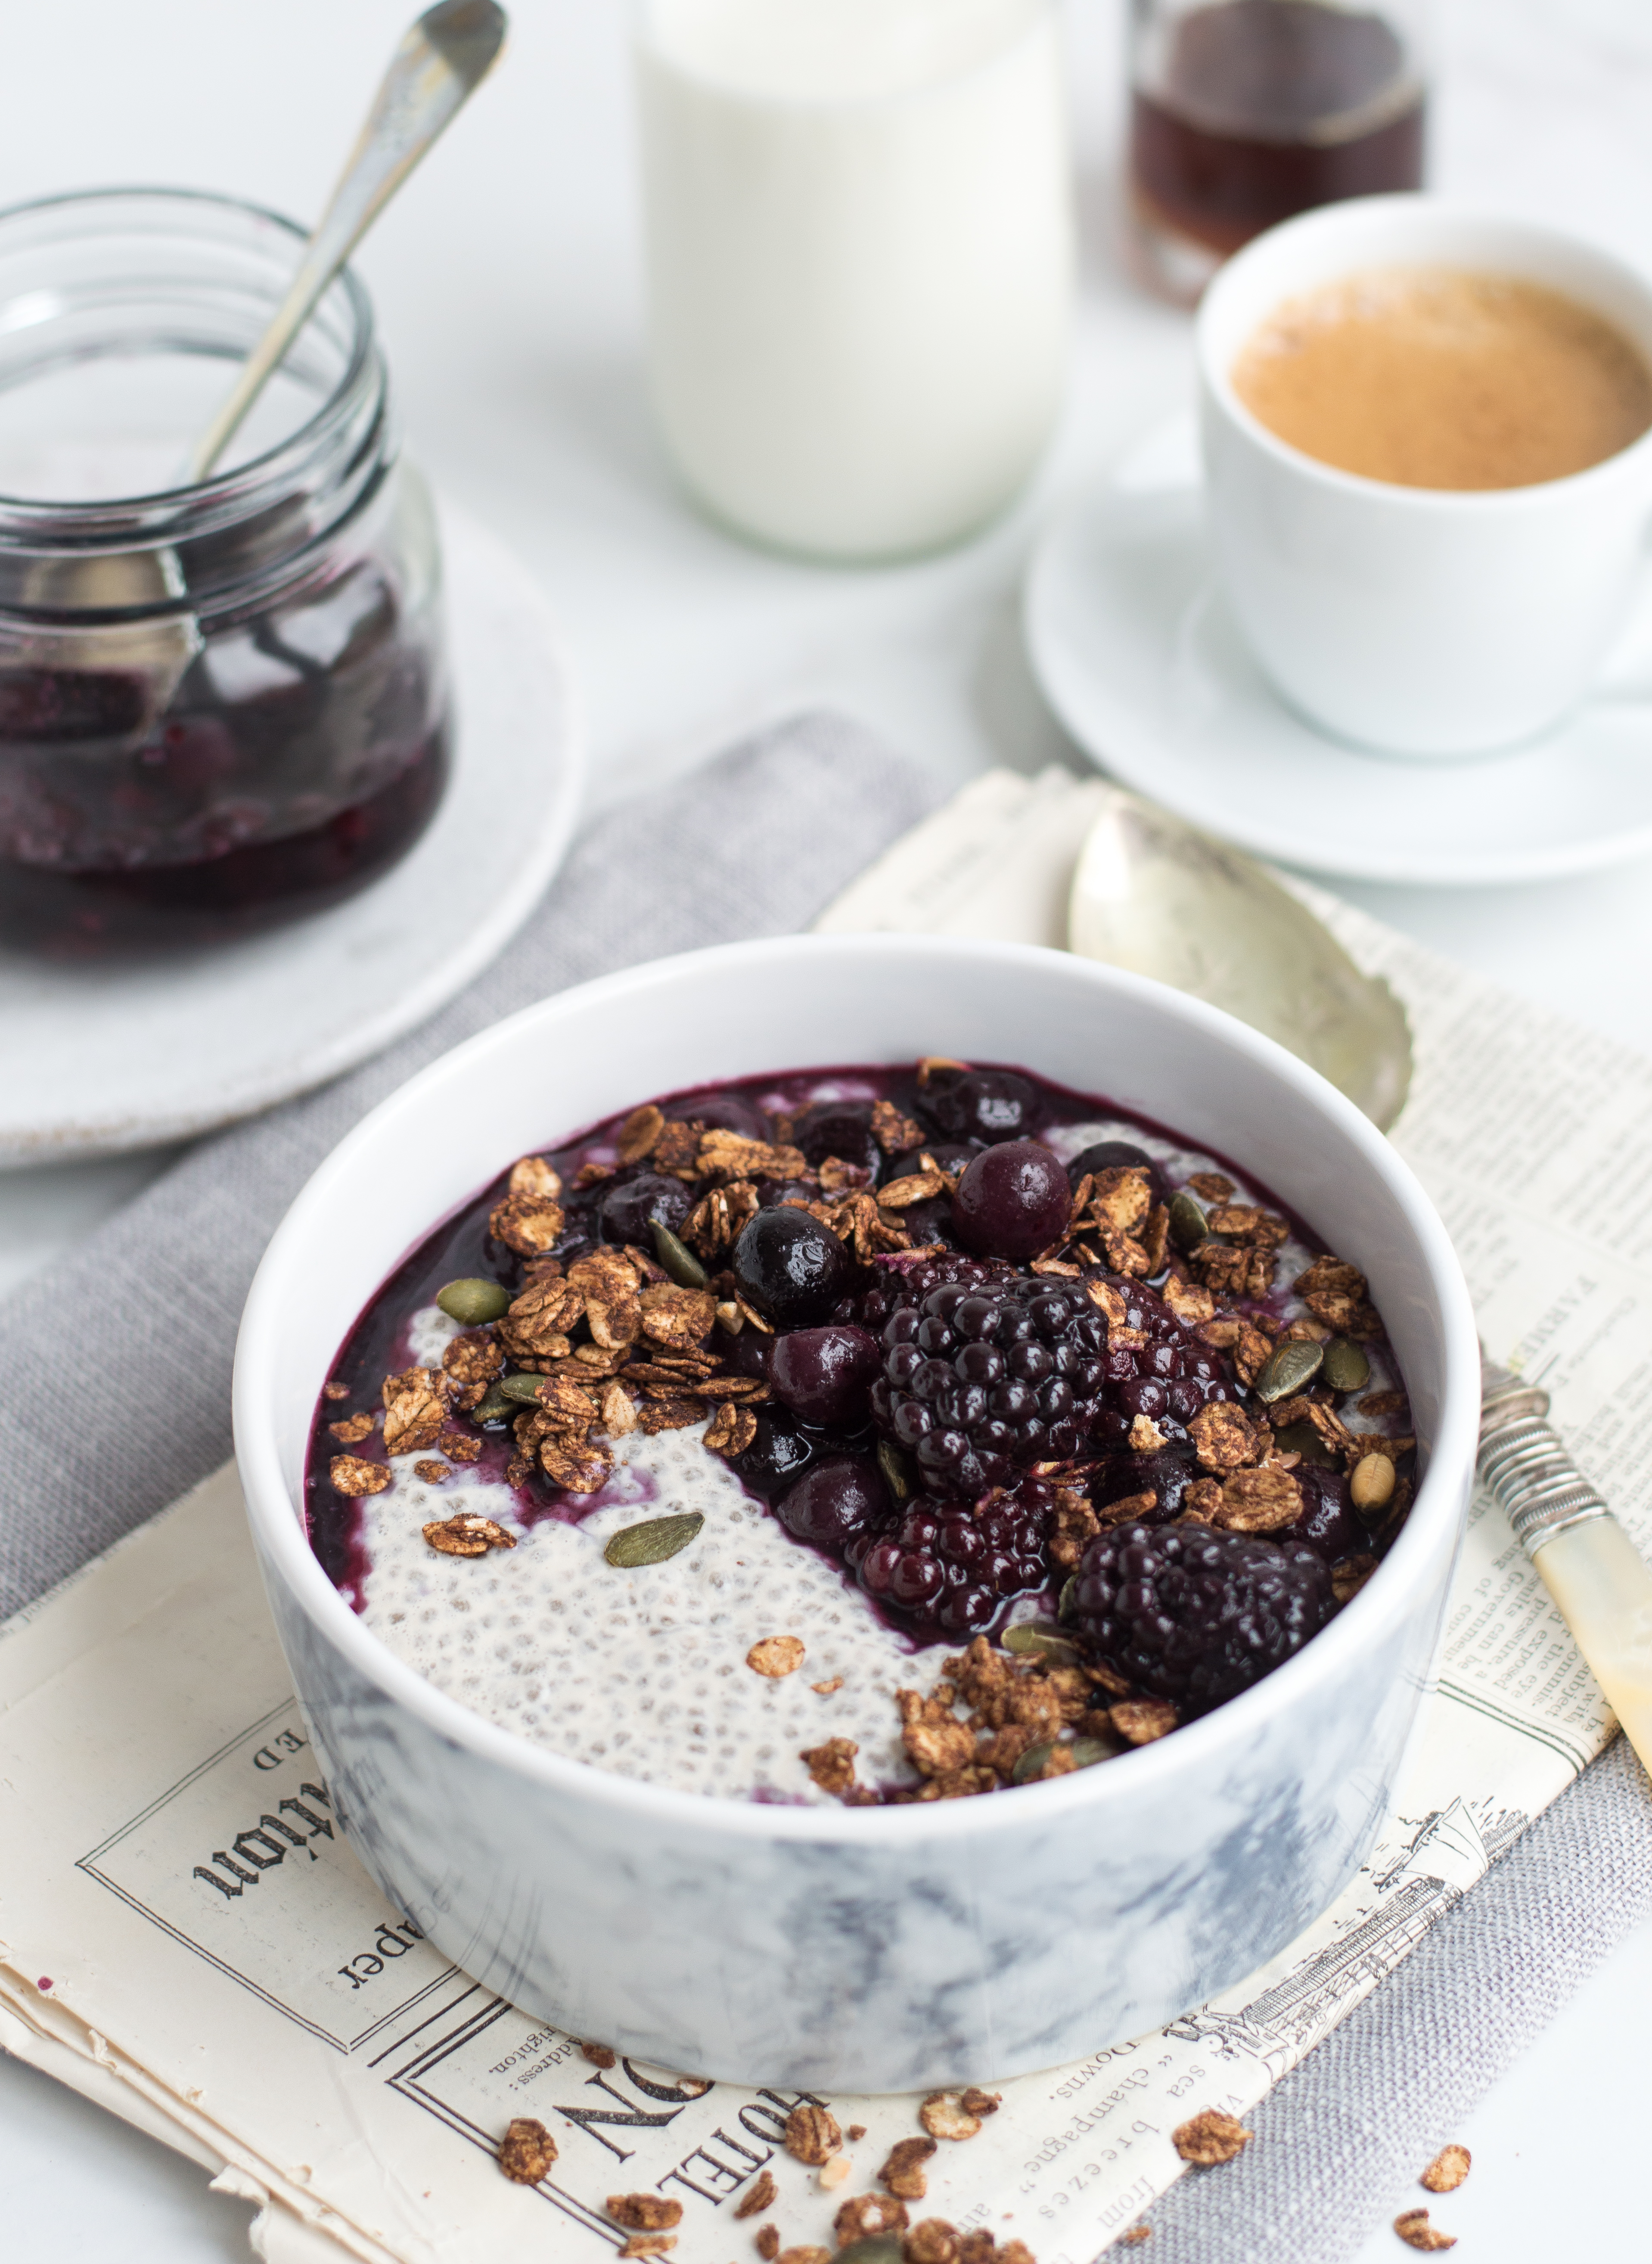 Chia pudding with berry compote & granola